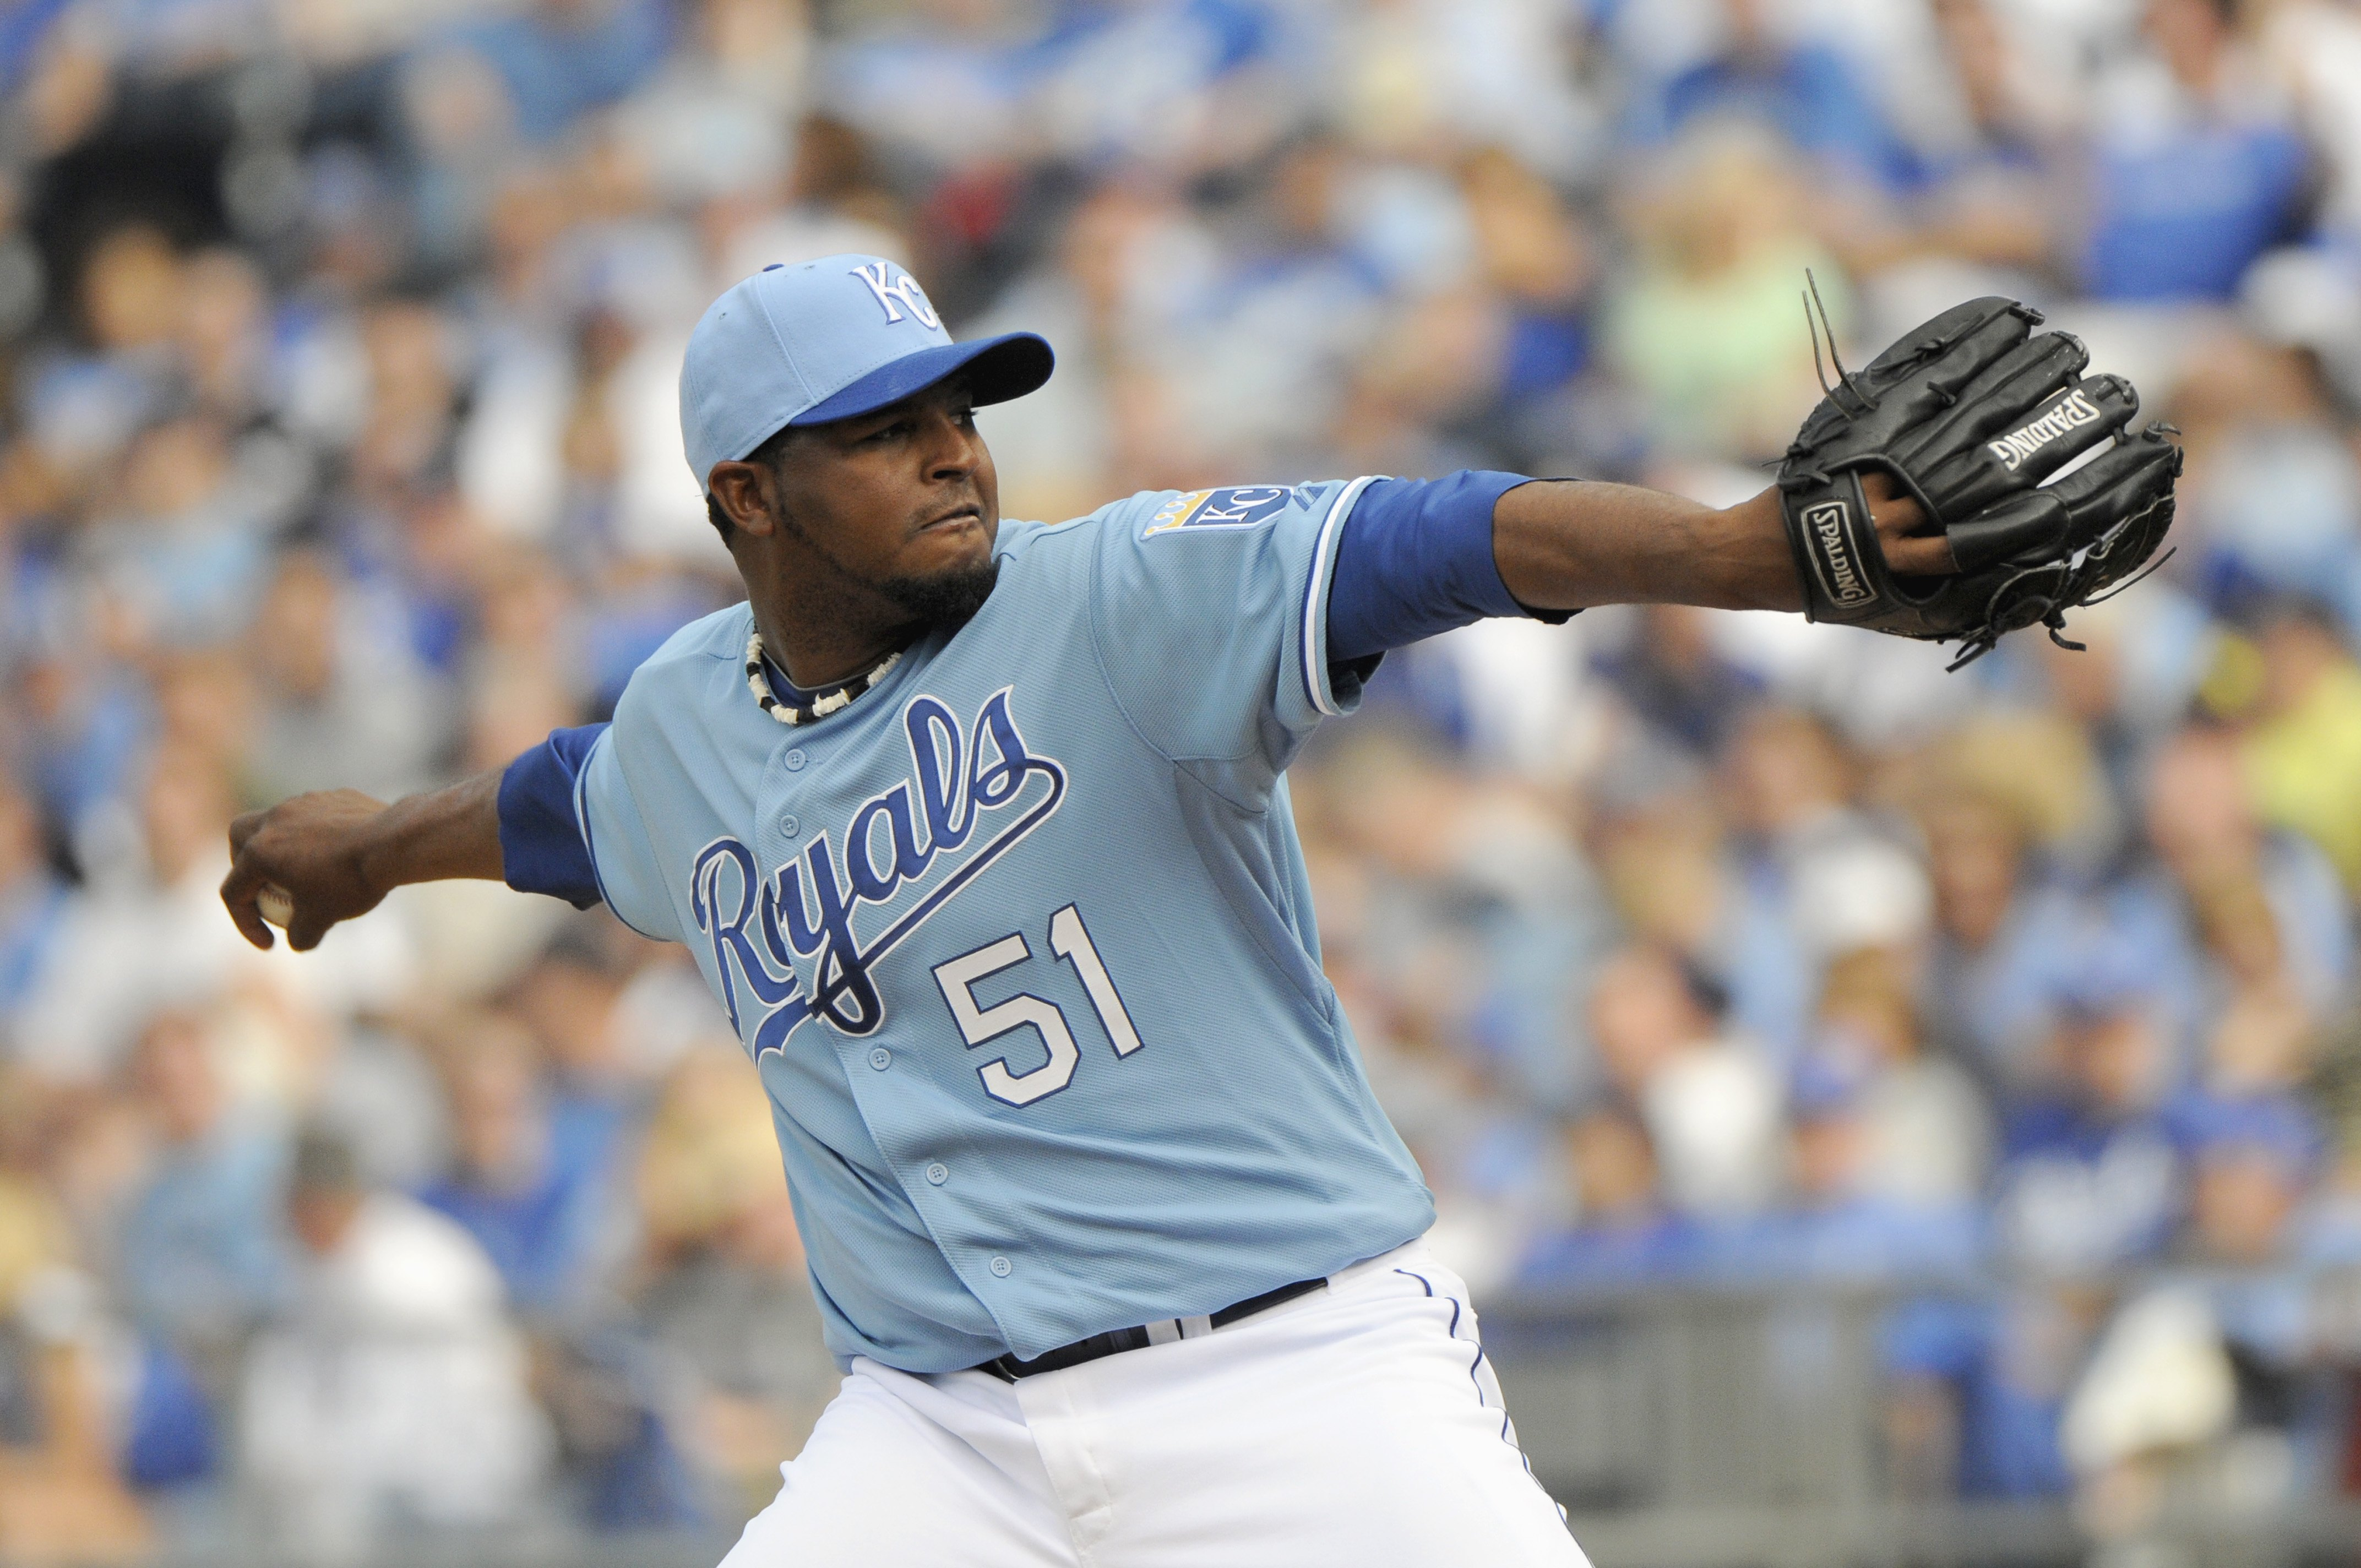 KANSAS CITY, MO - APRIL 05:  Robinson Tejeda #51 of the Kansas City Royals delivers a pitch during the season opener game against the Detroit Tigers on April 5, 2010 at Kauffman Stadium in Kansas City, Missouri. (Photo by G. Newman Lowrance/Getty Images)